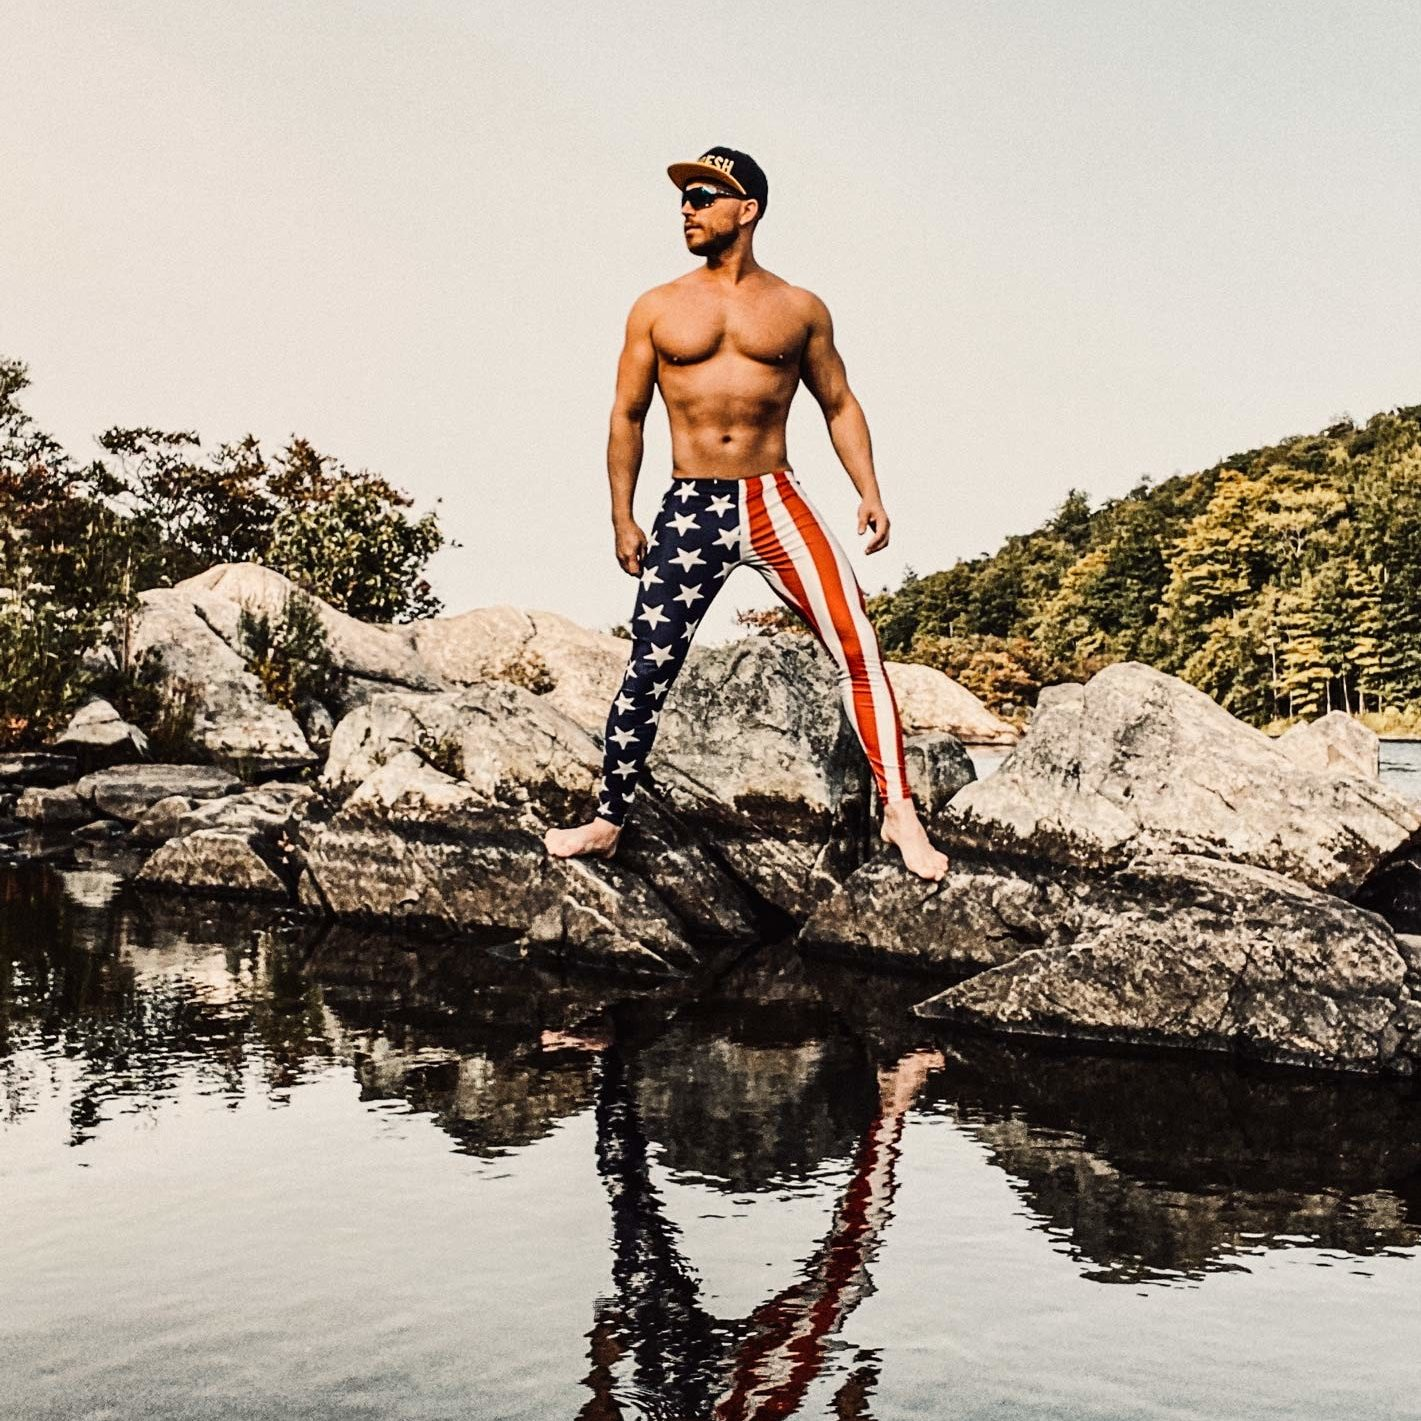 What Is More Exciting Than Getting Fit During Your Adventure Travel? by Certified Fitness Trainer and Bodybuilding Coach Maxwell Alexander